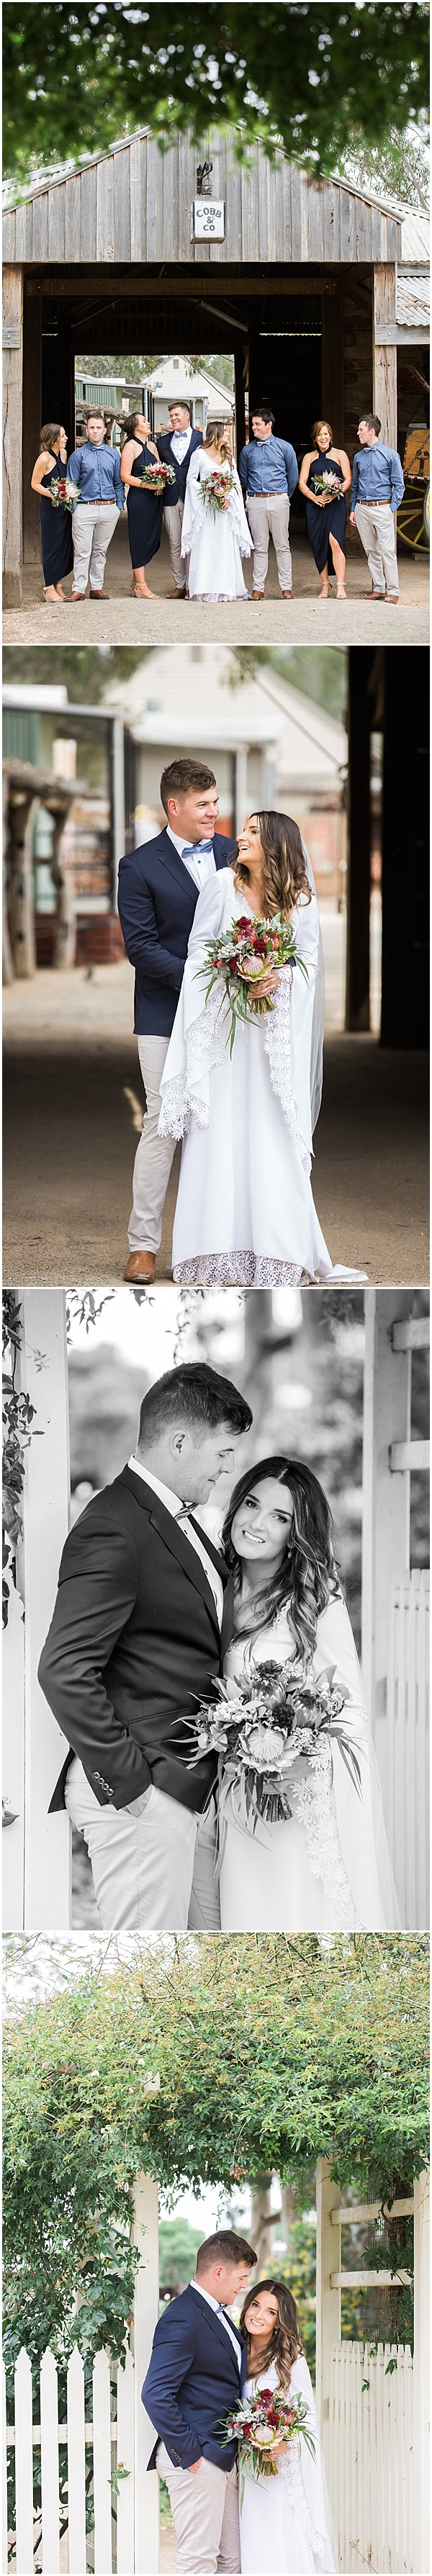 Bendigo Wedding Photographer_0013